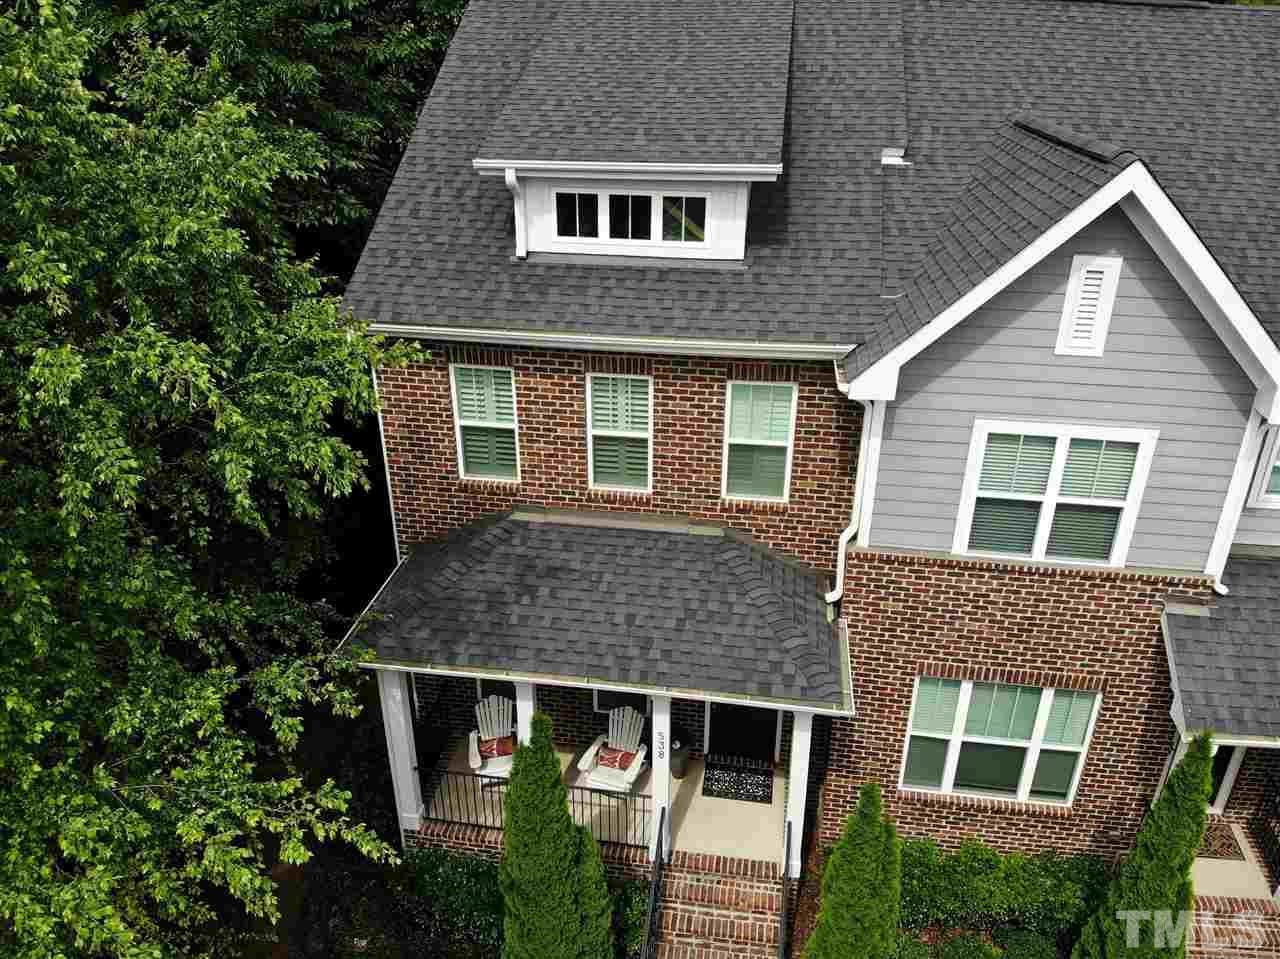 Photo of 538 Ledbetter Court, Raleigh, NC 27608 (MLS # 2389882)